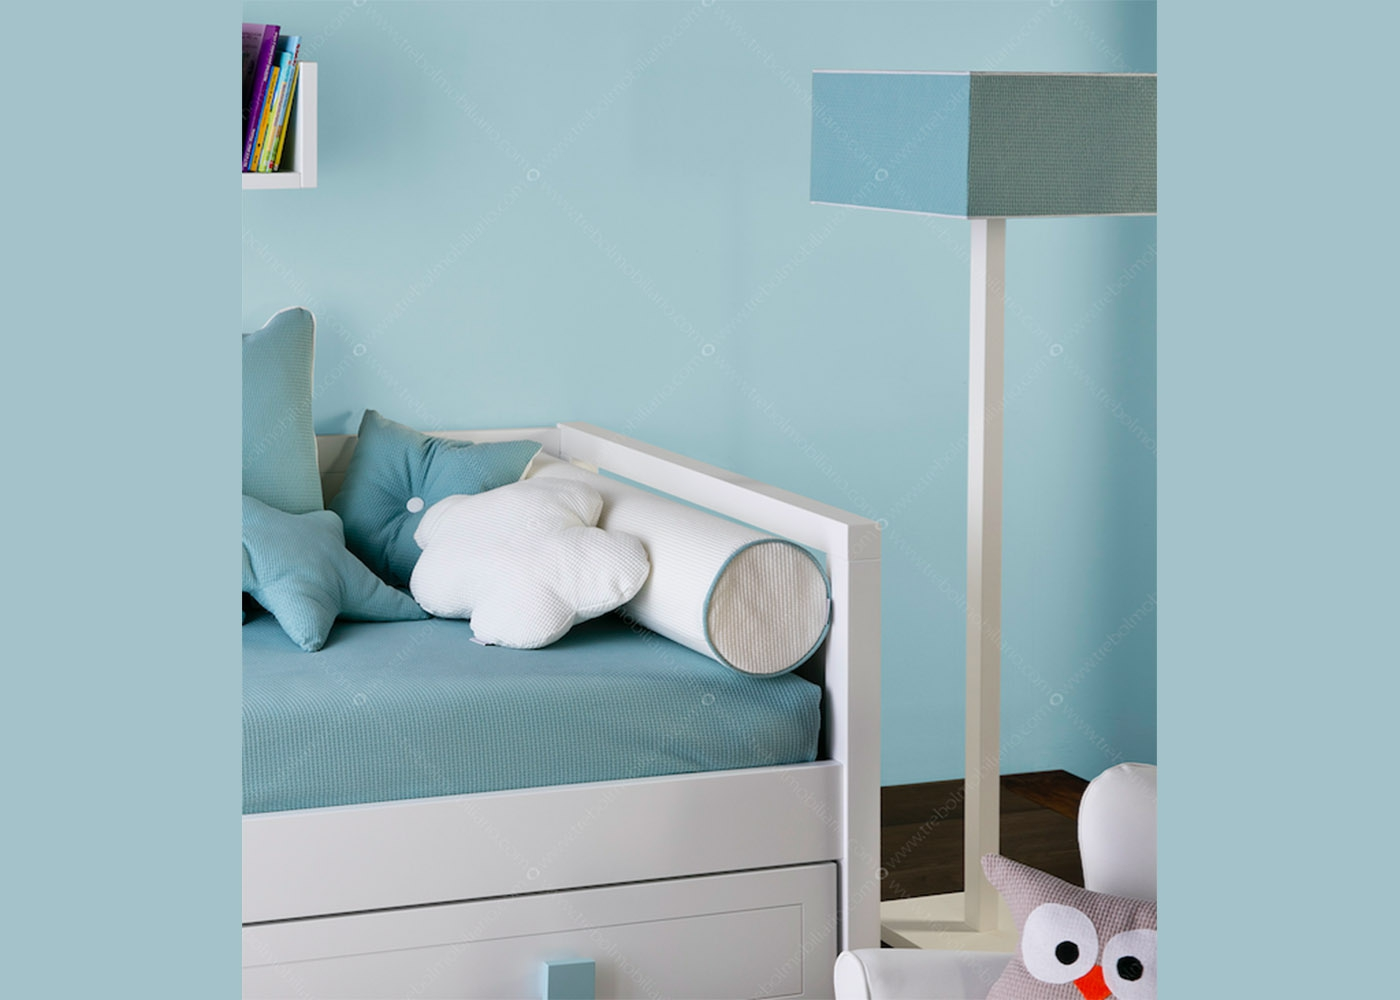 lampadaire pour chambre d 39 enfant aux couleurs vari es chez ksl living. Black Bedroom Furniture Sets. Home Design Ideas